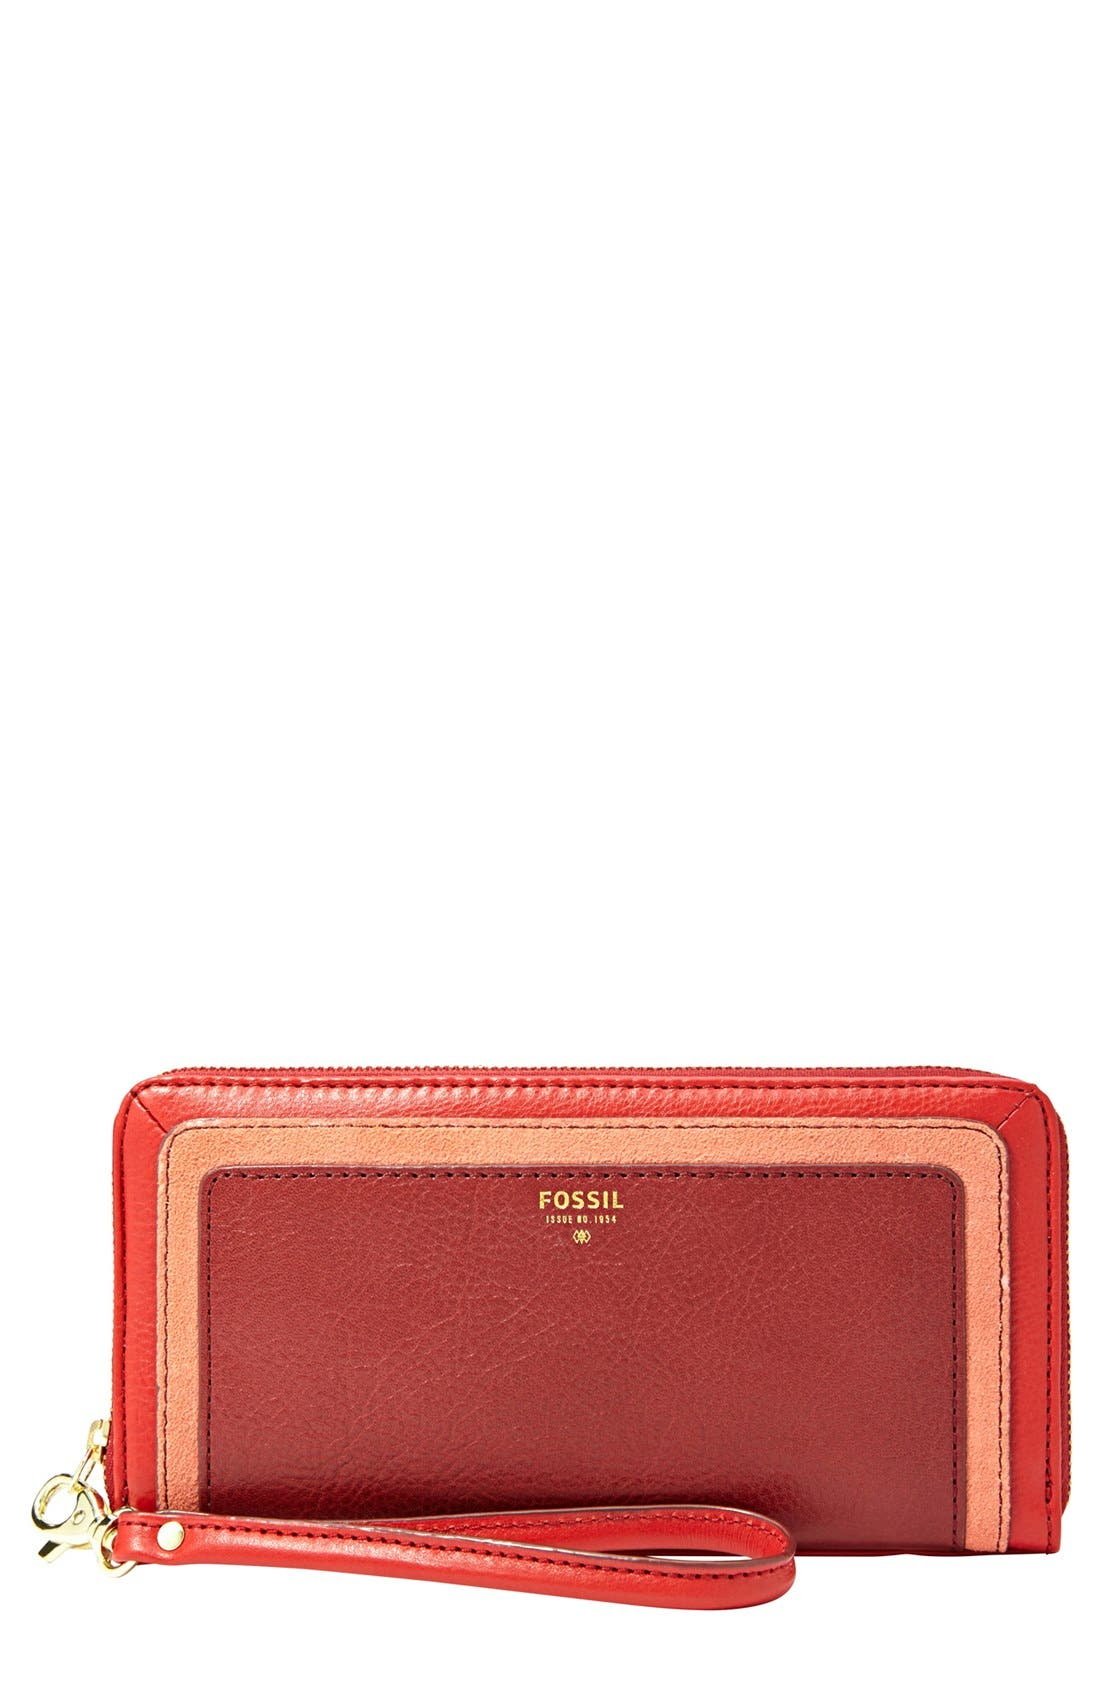 Alternate Image 1 Selected - Fossil 'Sydney' Colorblock Clutch Wallet